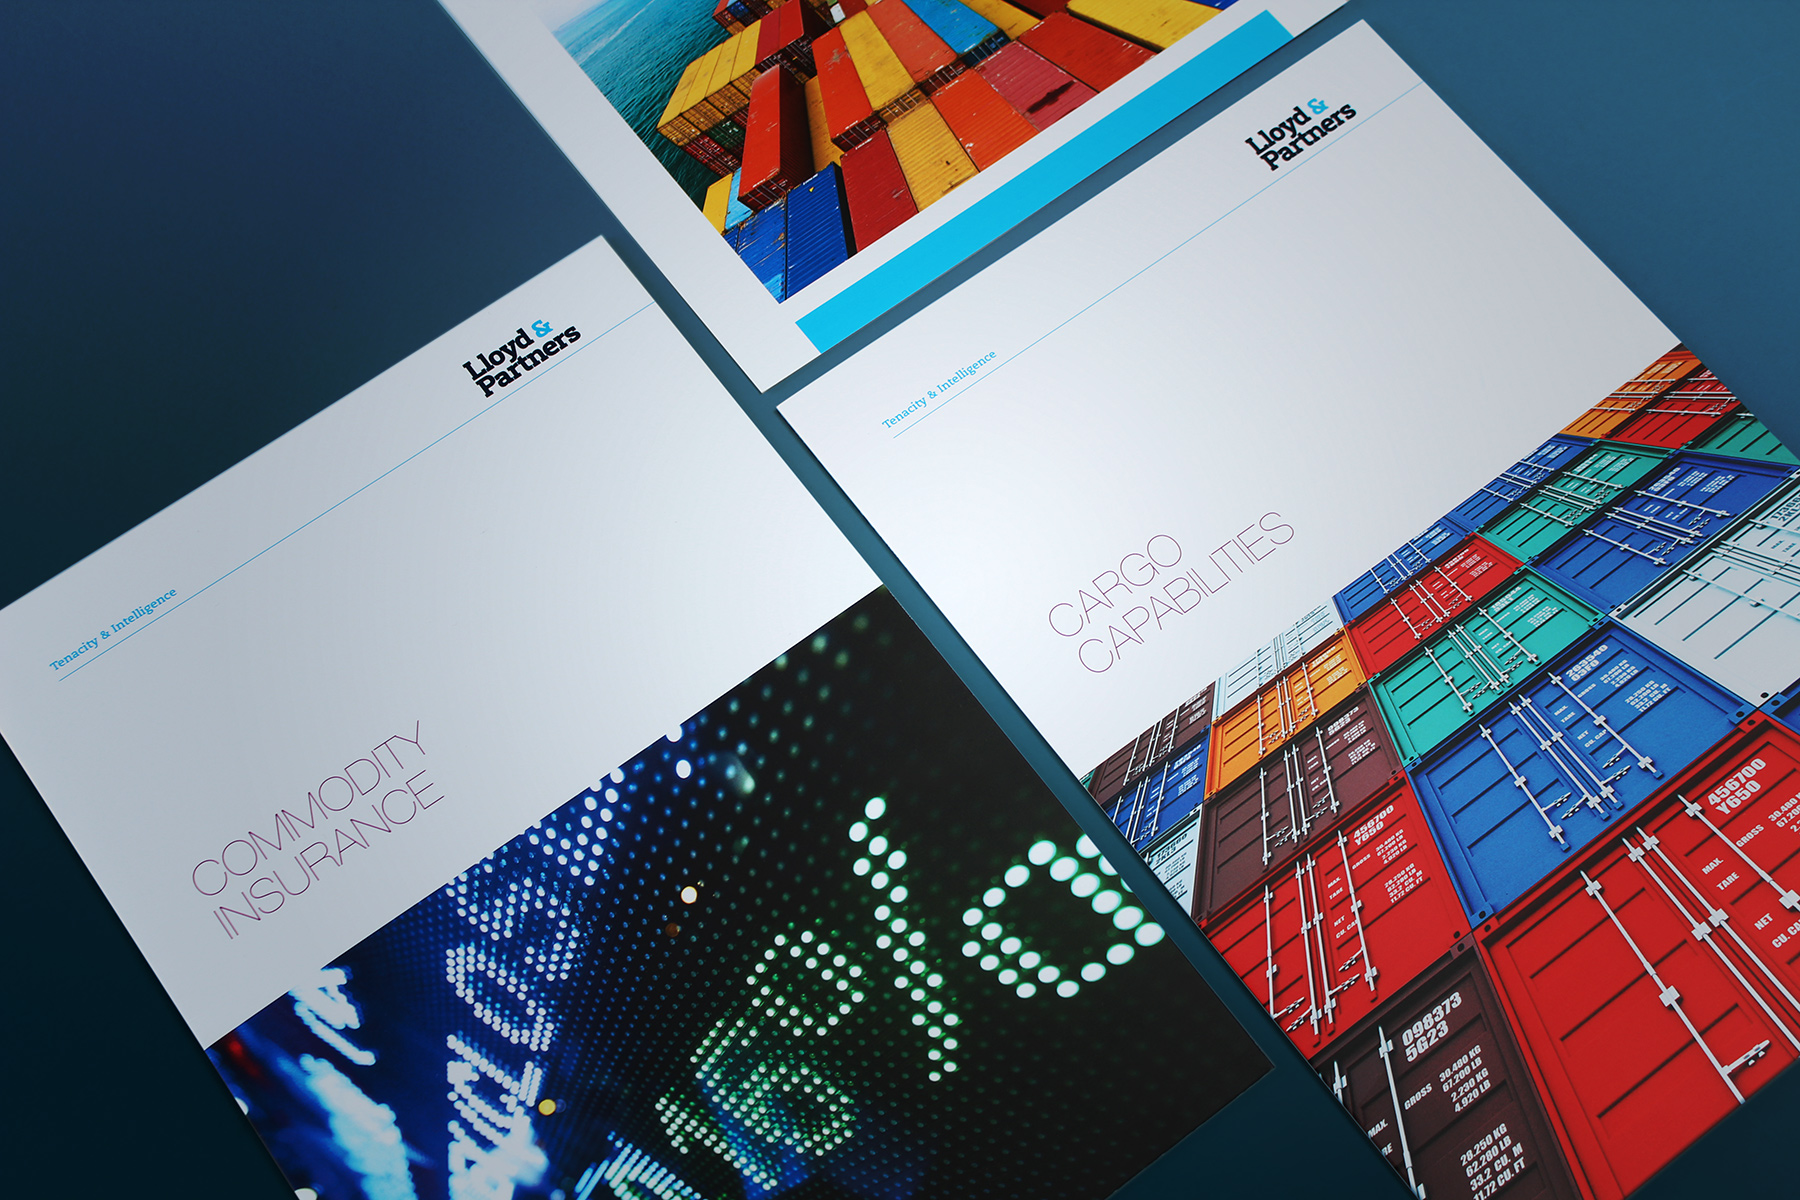 Large imagery is used throughout the brand's printed communications, which also utilises lots of white space to hold both type and the brand mark.